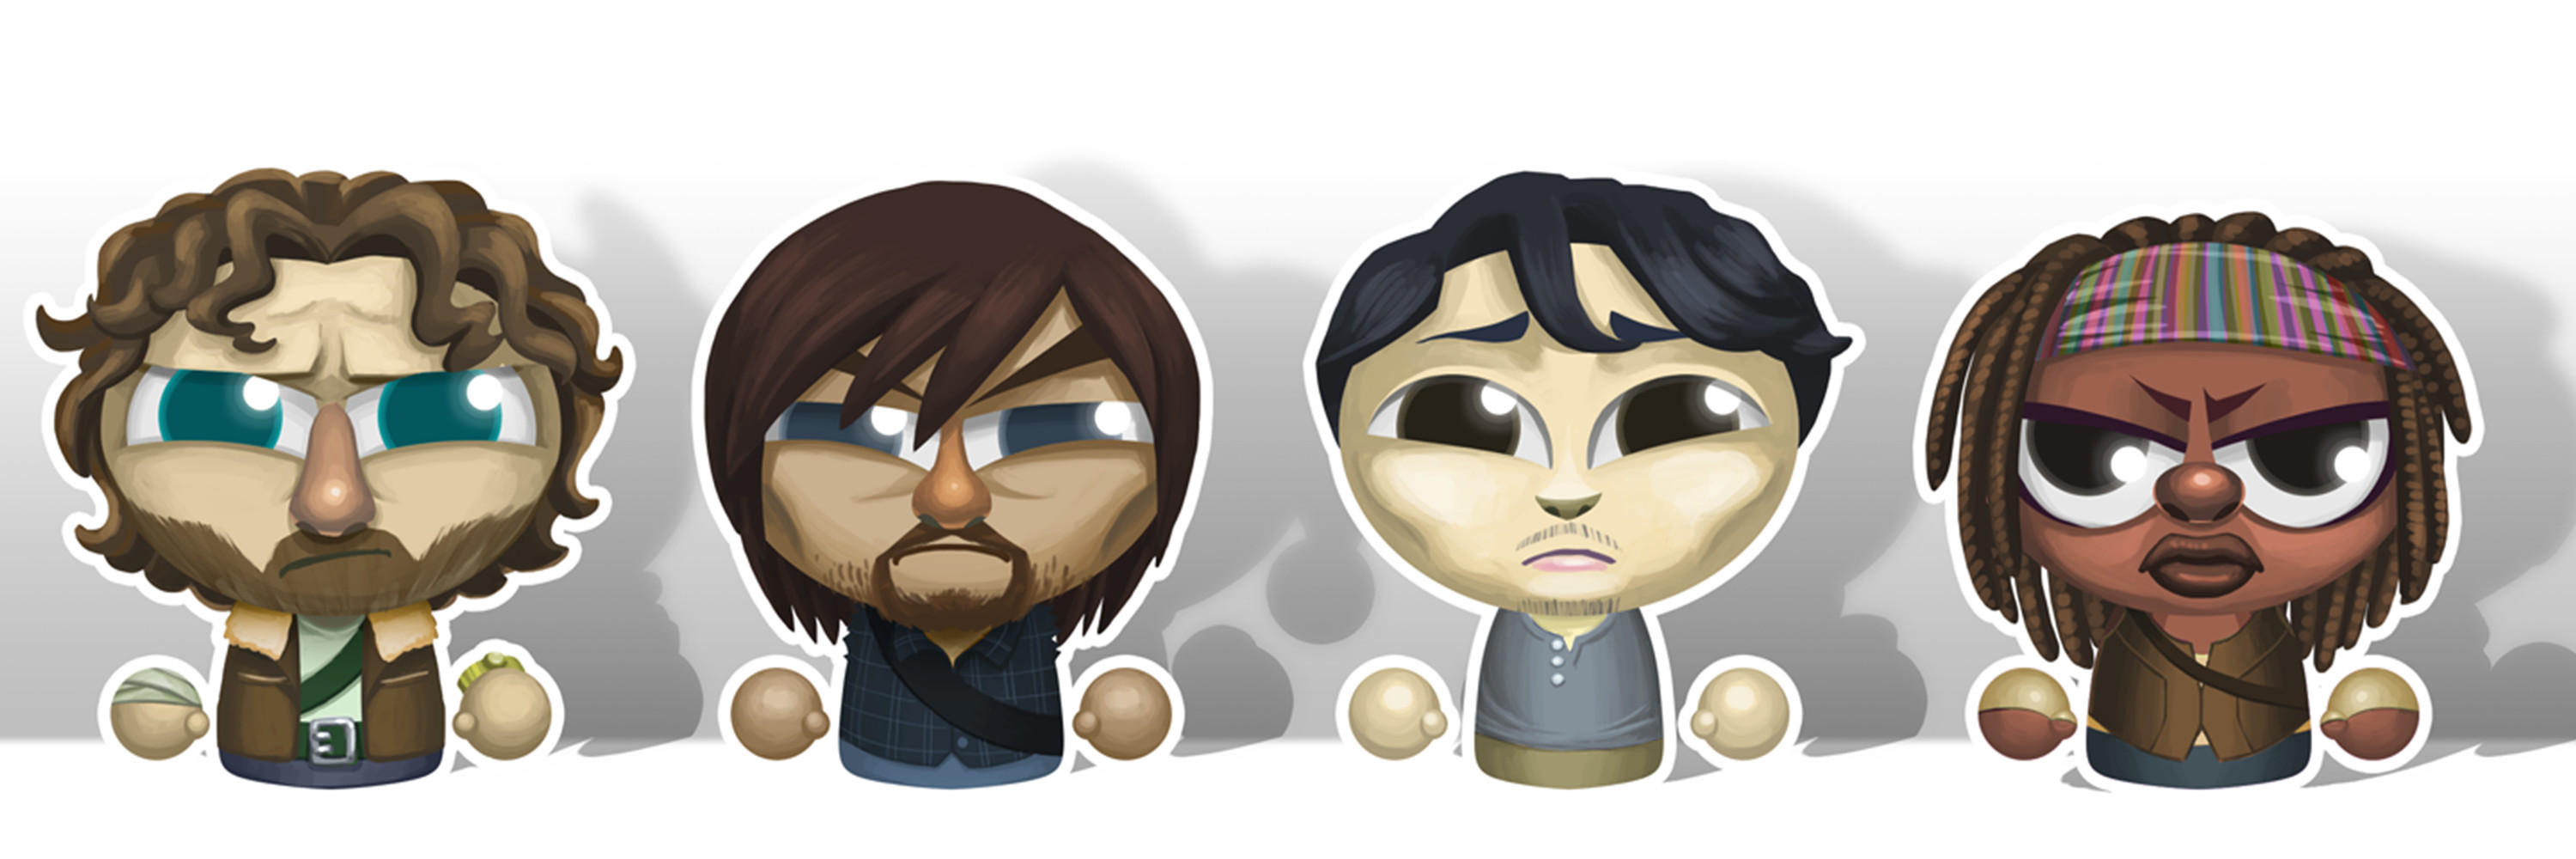 Walking Dead skin character roll: Rick Grimes, Daryl Dixon, Gleen Rhee and Michonne.